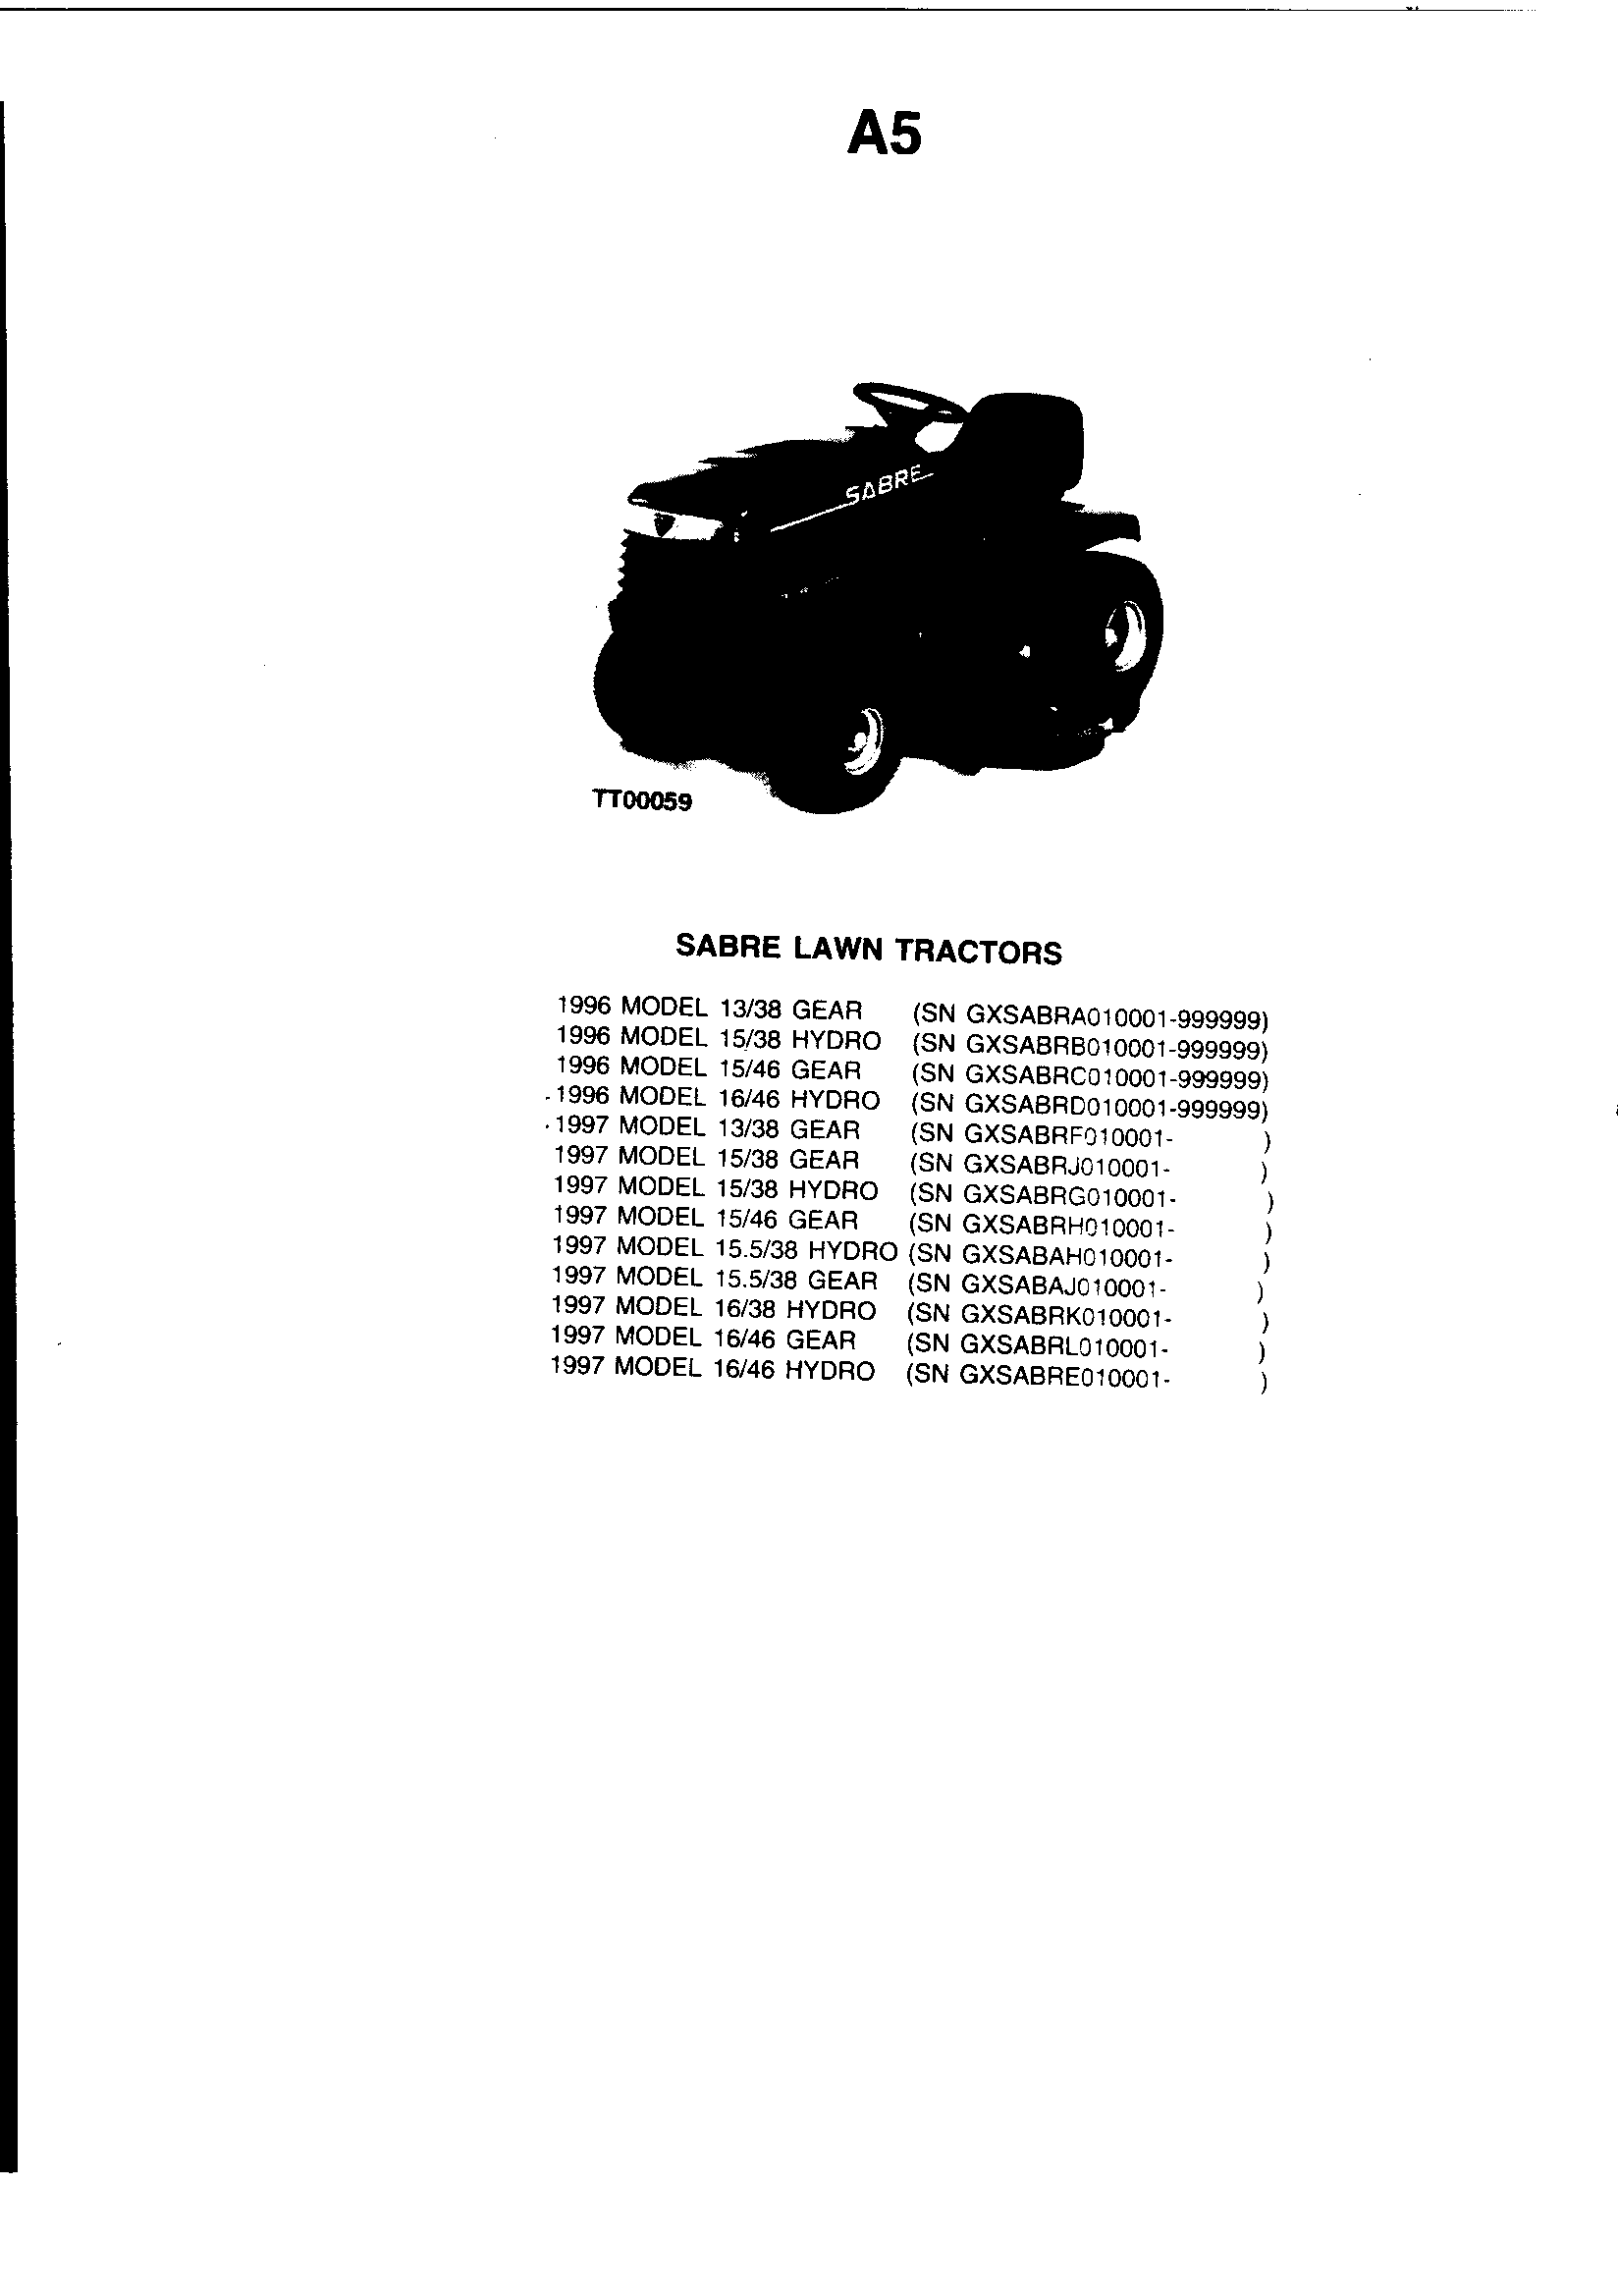 Sabre model 1338 GEAR GXSABRF lawn, tractor genuine parts